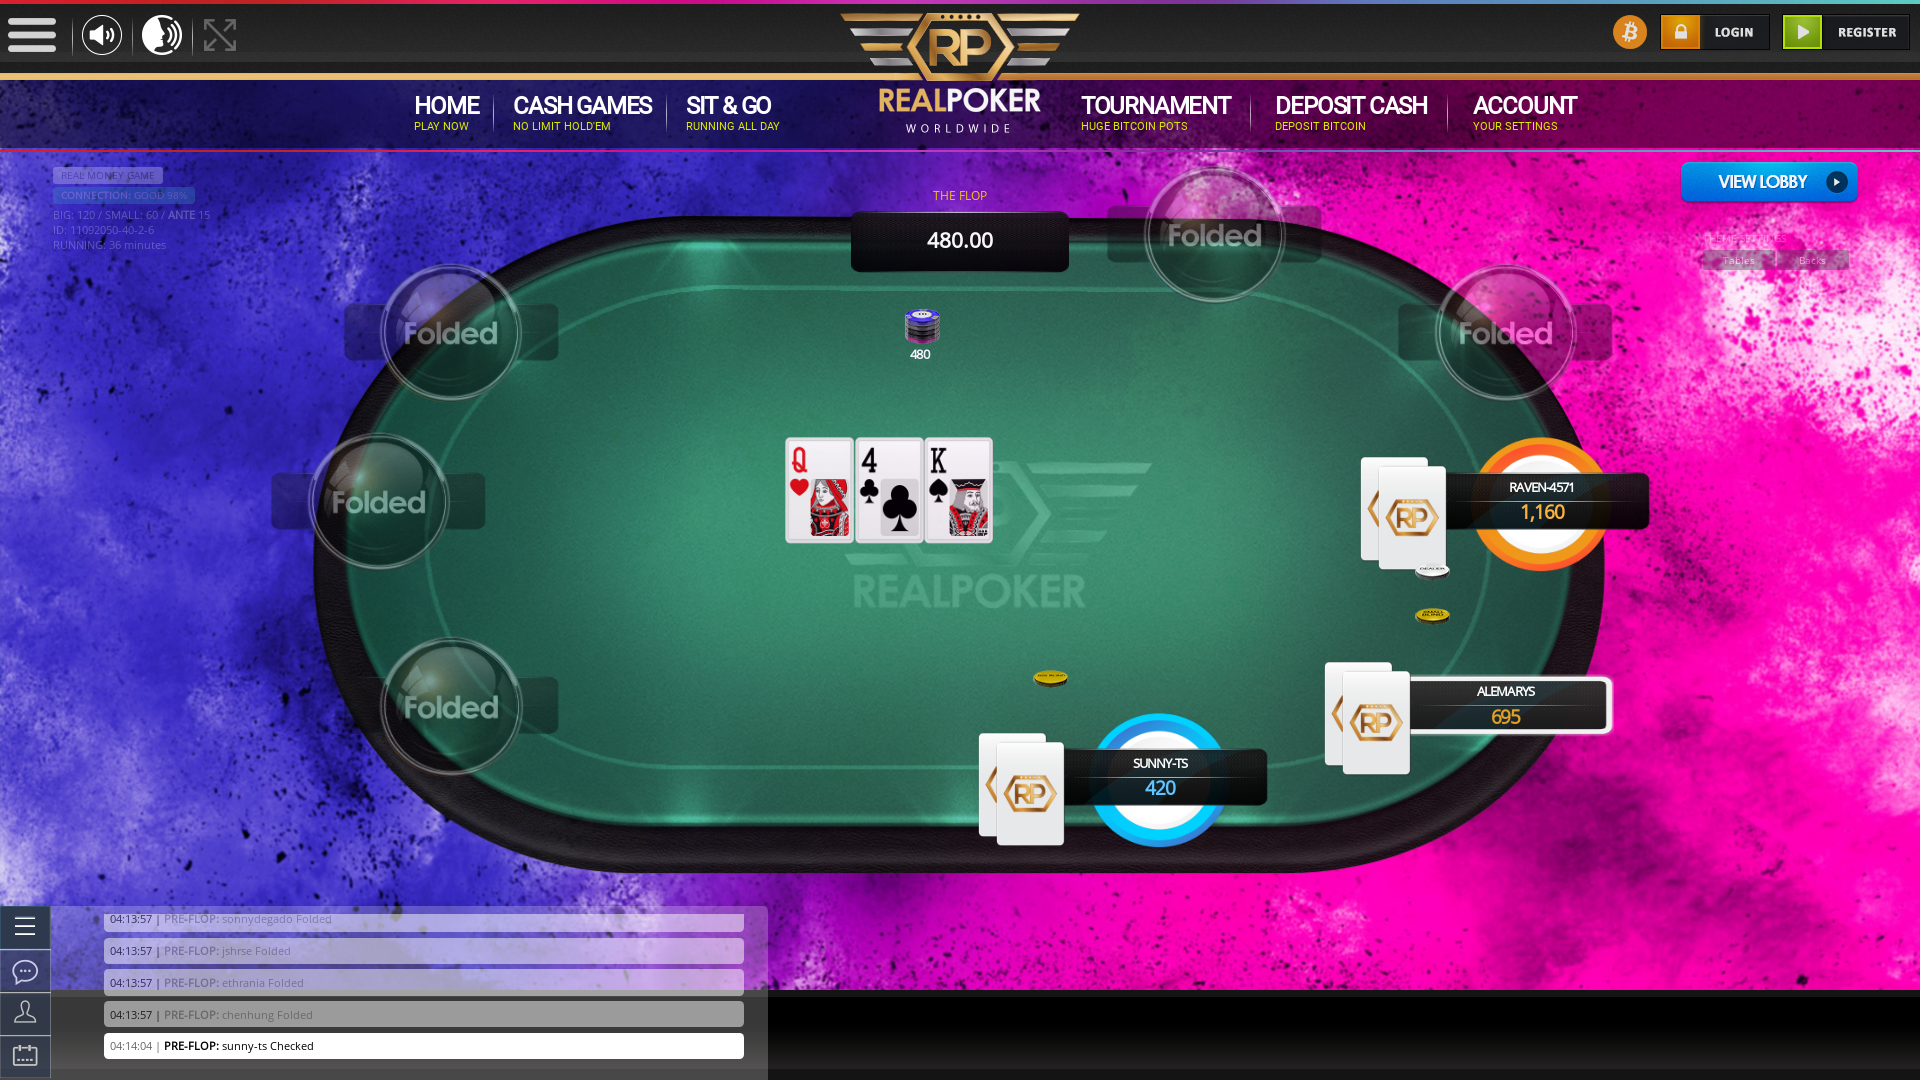 online poker on a 10 player table in the 36th minute match up